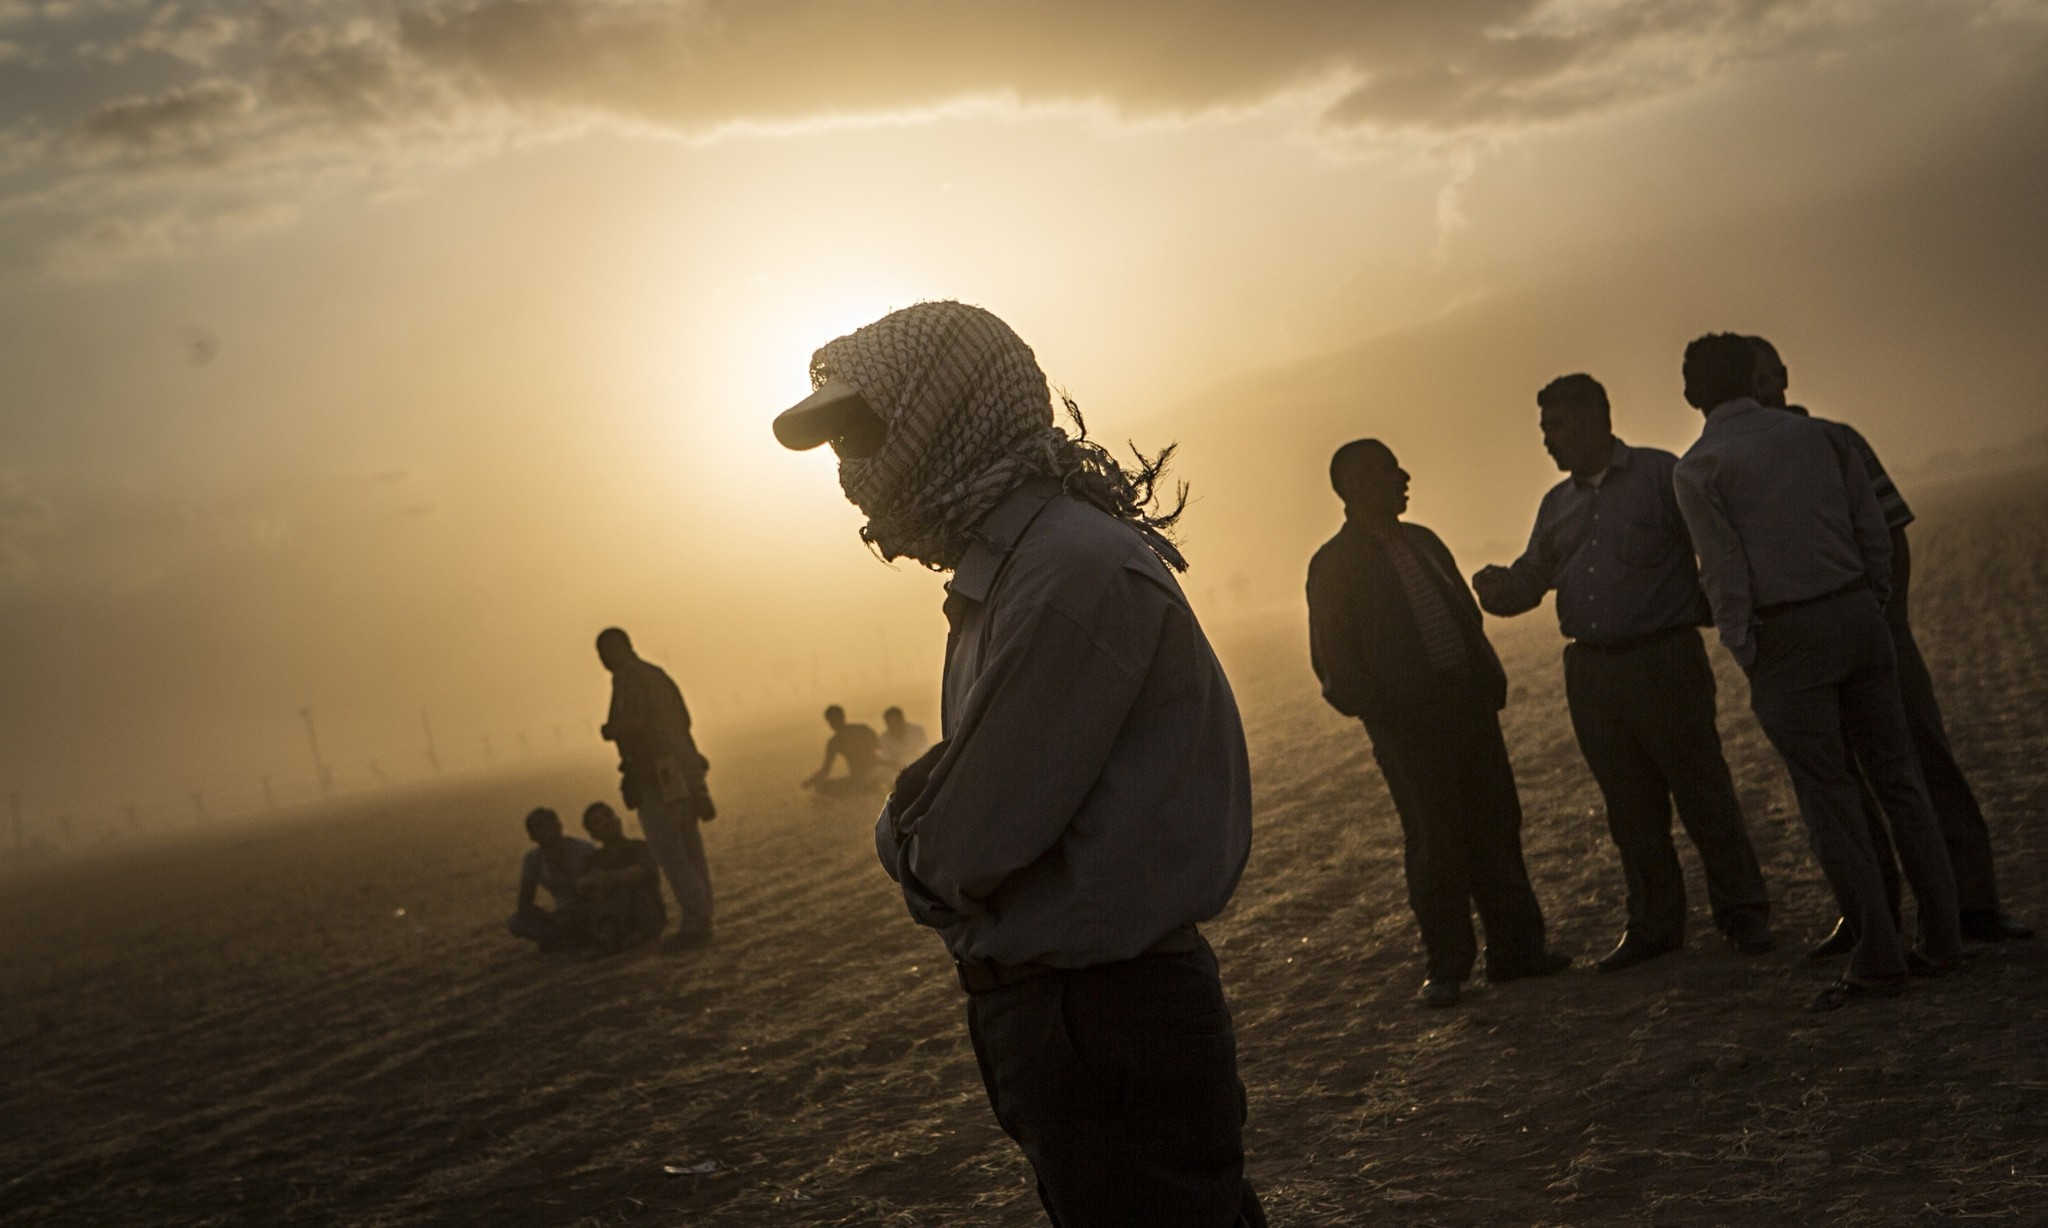 'Their fight is our fight': Kurds rush from across Turkey to defend Kobani